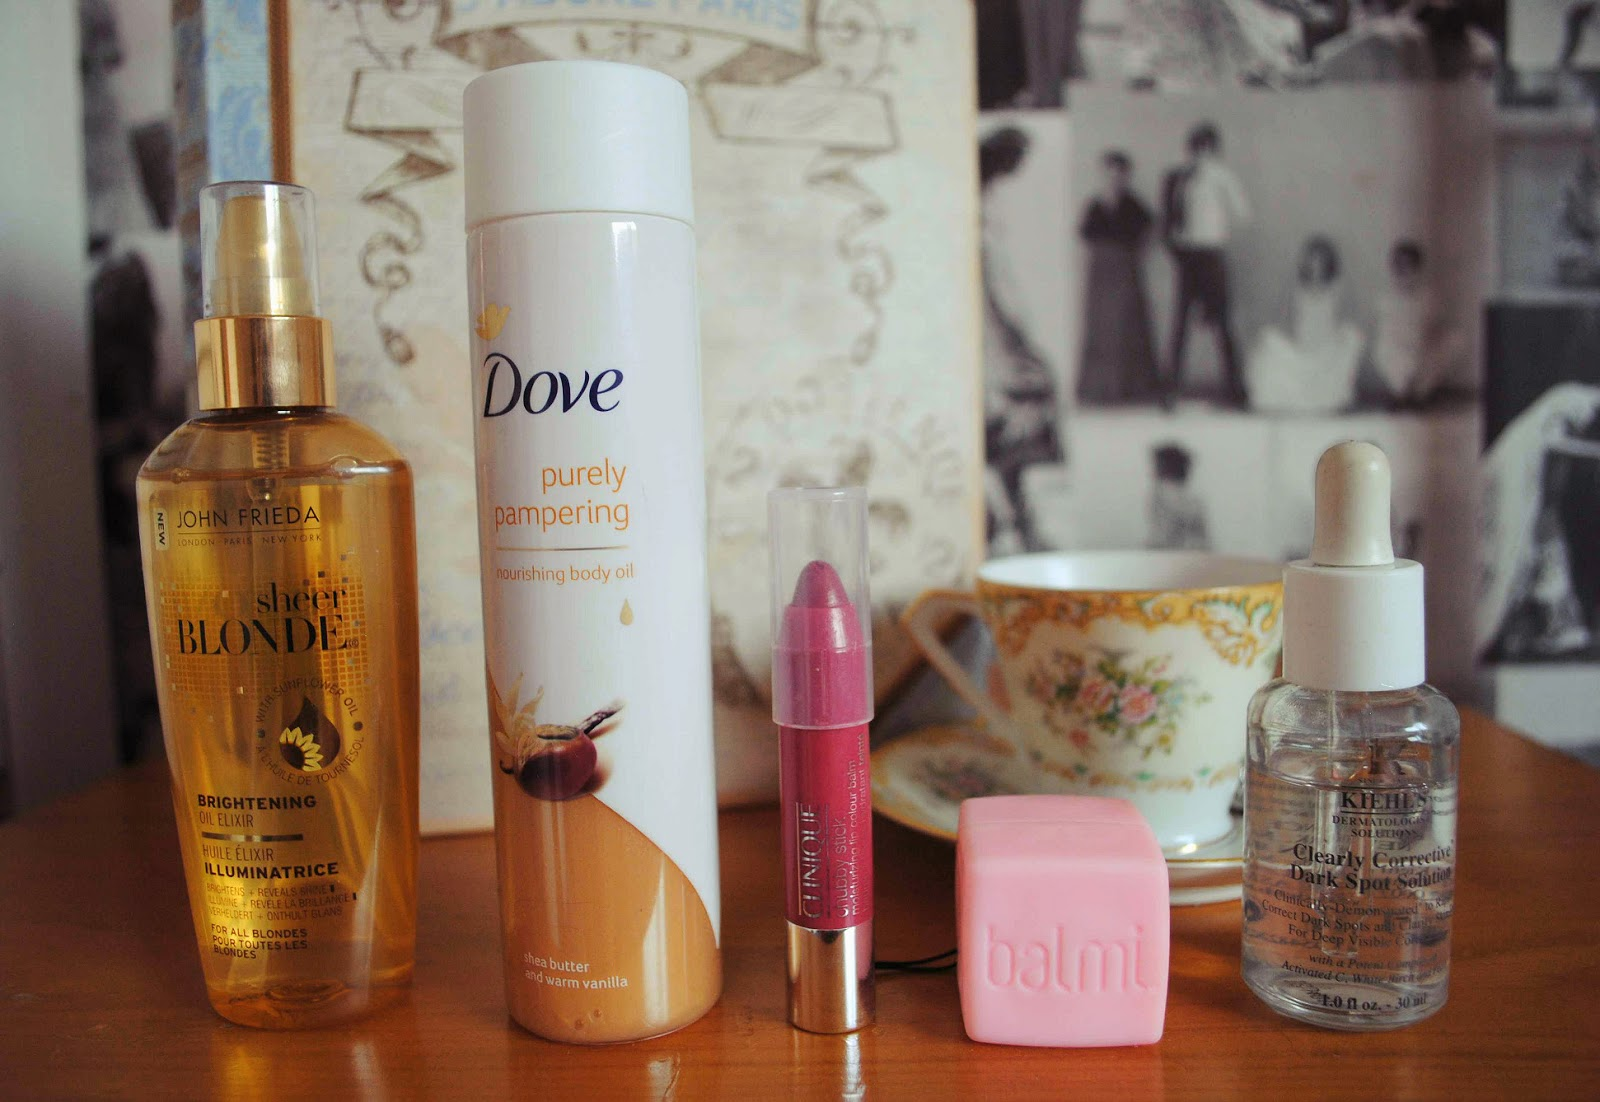 beauty edit favourites john frieda sheer blonde dove body oil clinique chubby stick balmi kheil's dark spot solution review